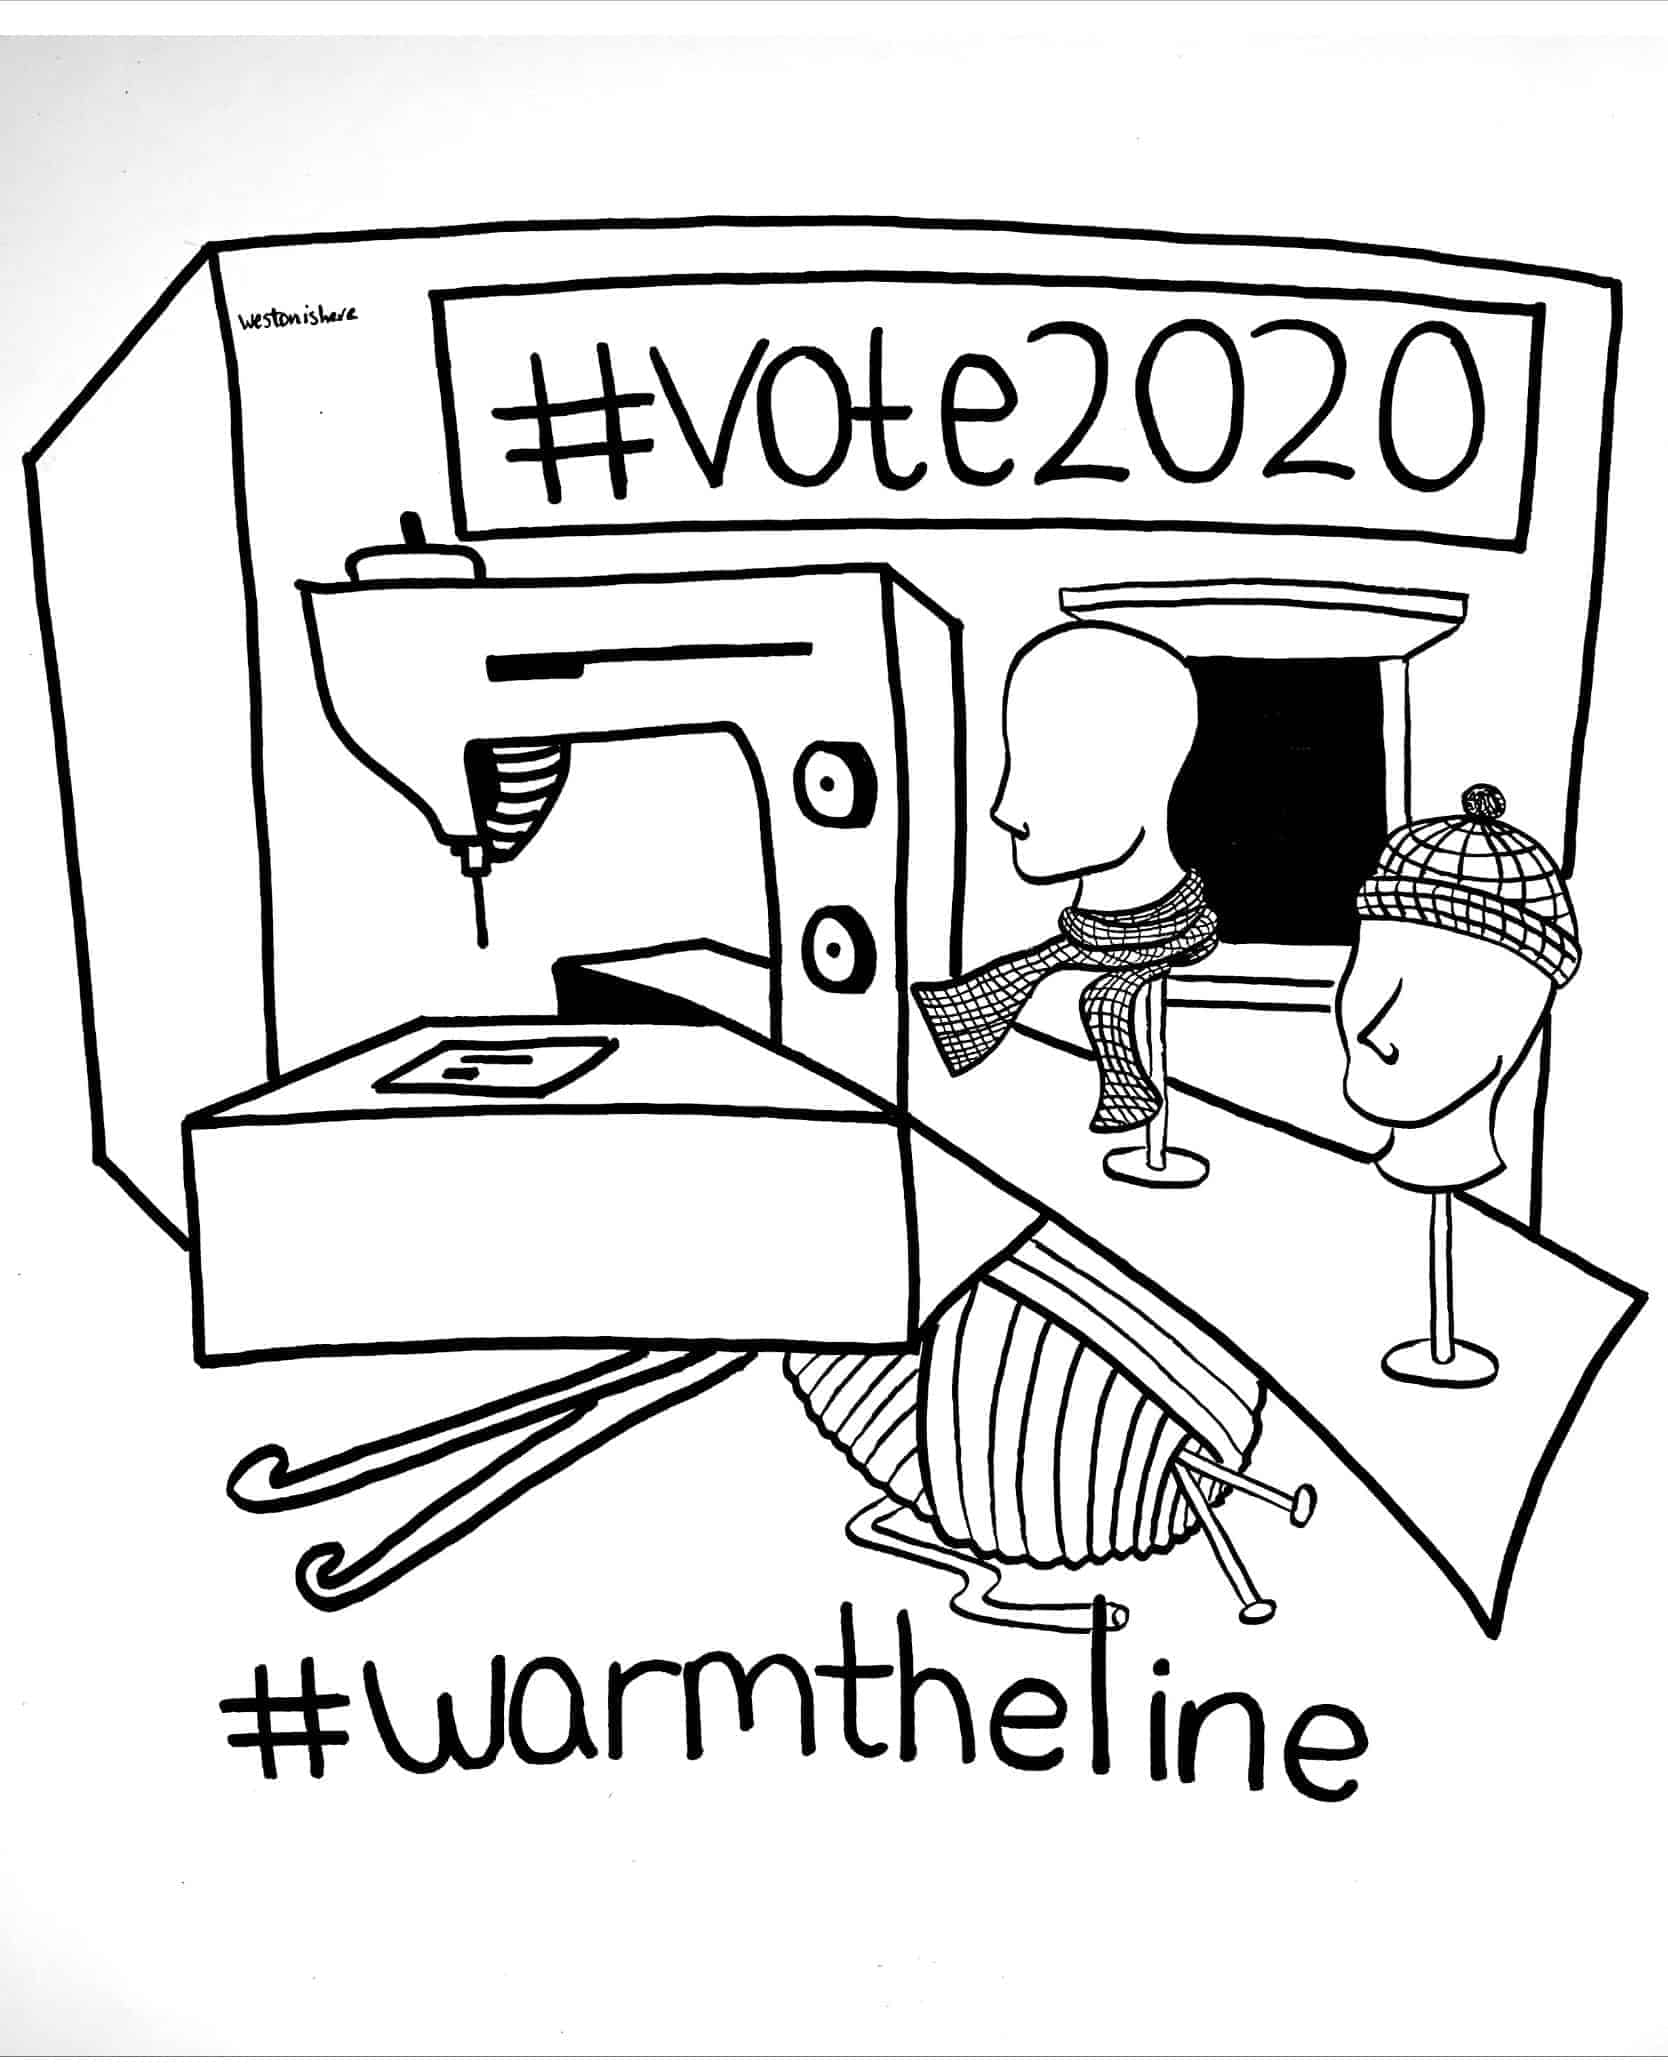 A sewing machine illustration that reads #vote2020 and #warmtheline